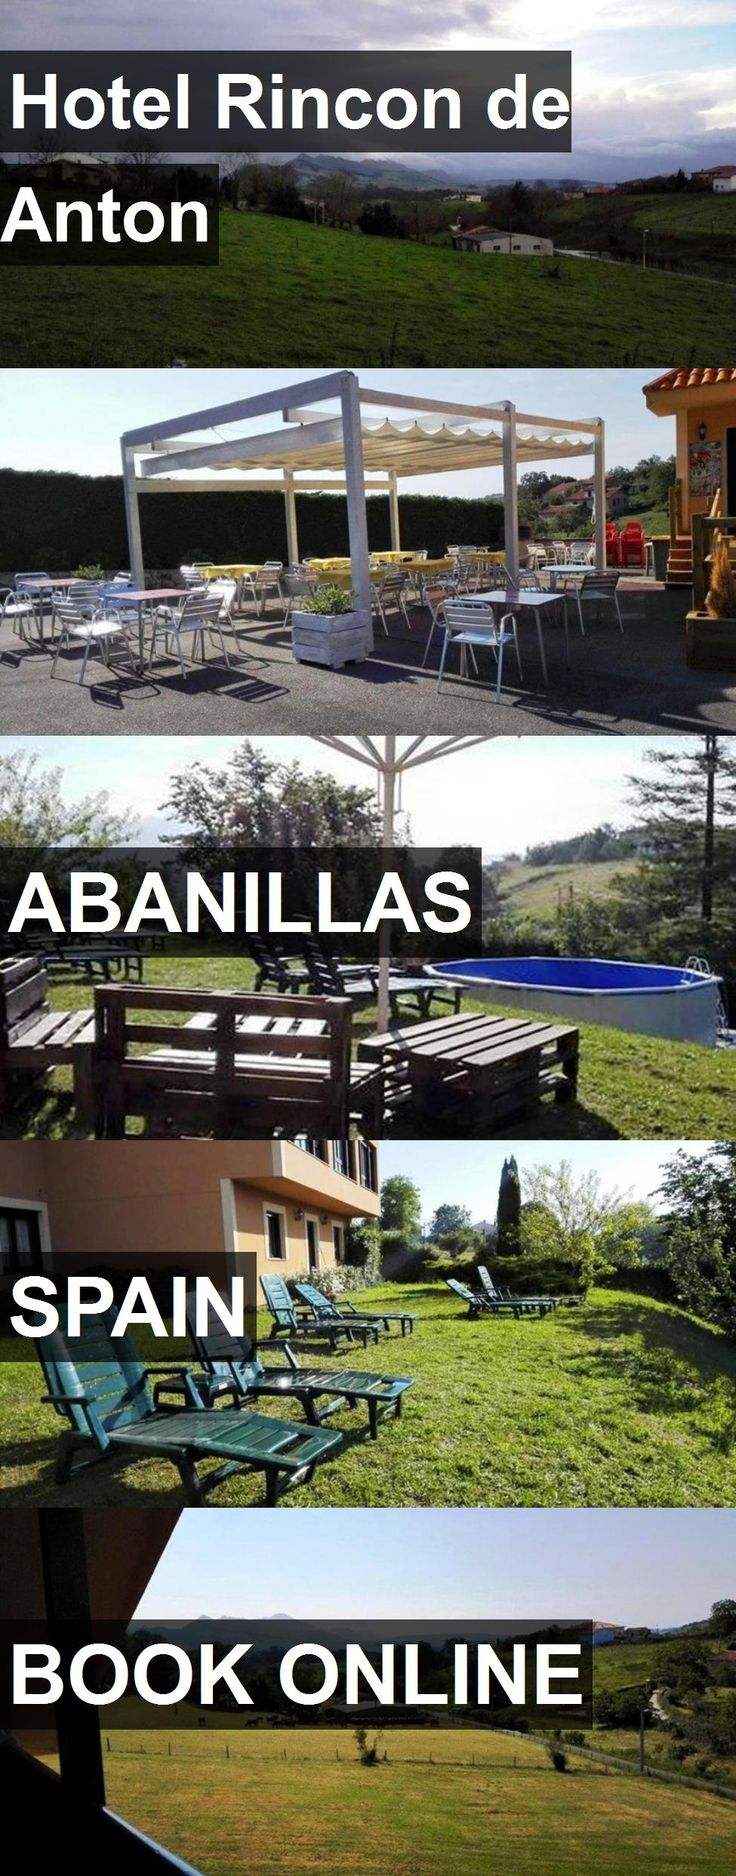 Hotel Hotel Rincon de Anton in Abanillas, Spain. For more information, photos, reviews and best prices please follow the link. #Spain #Abanillas #HotelRincondeAnton #hotel #travel #vacation